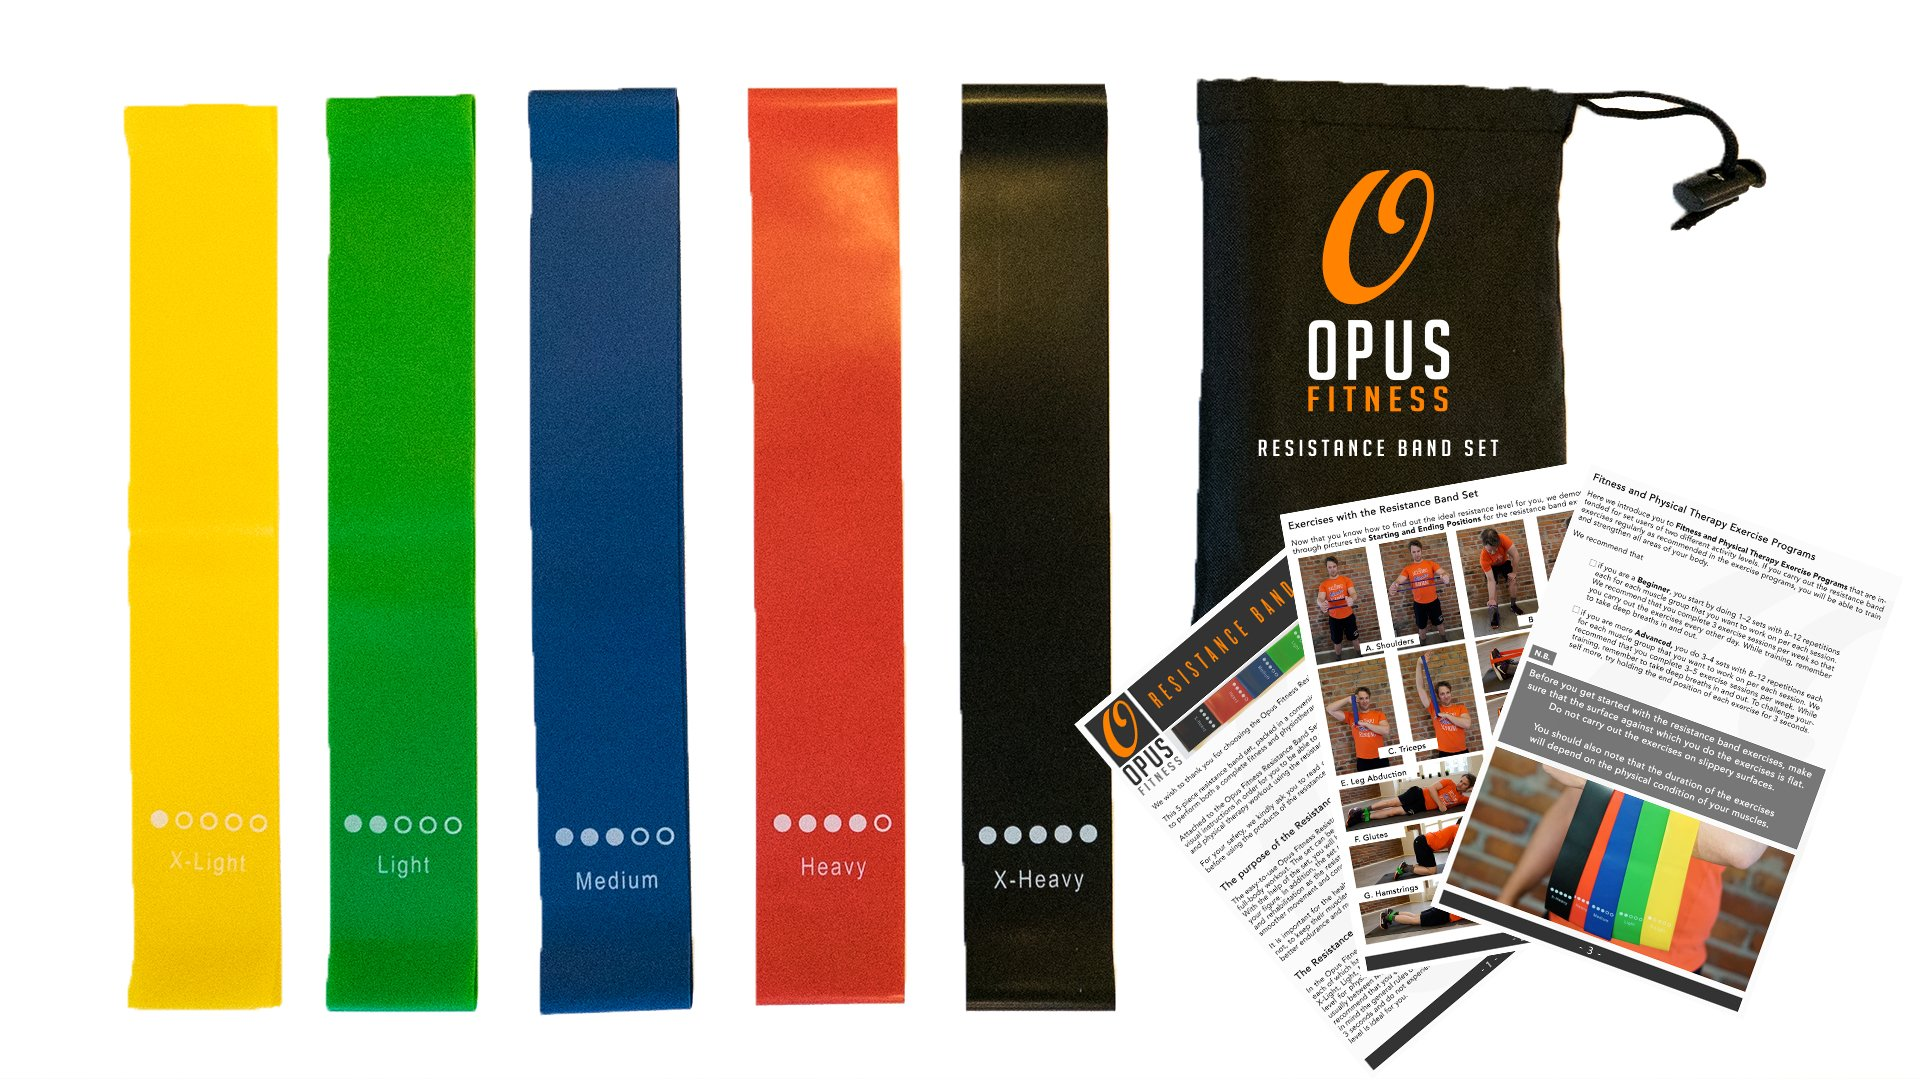 Opus Fitness Resistance Bands Training Exercise Set – 80 Day Obsession Equipment – Also for Injury Rehabilitation and Physical Therapy – Set of Five Bands with Carrying Case and Full Instructions